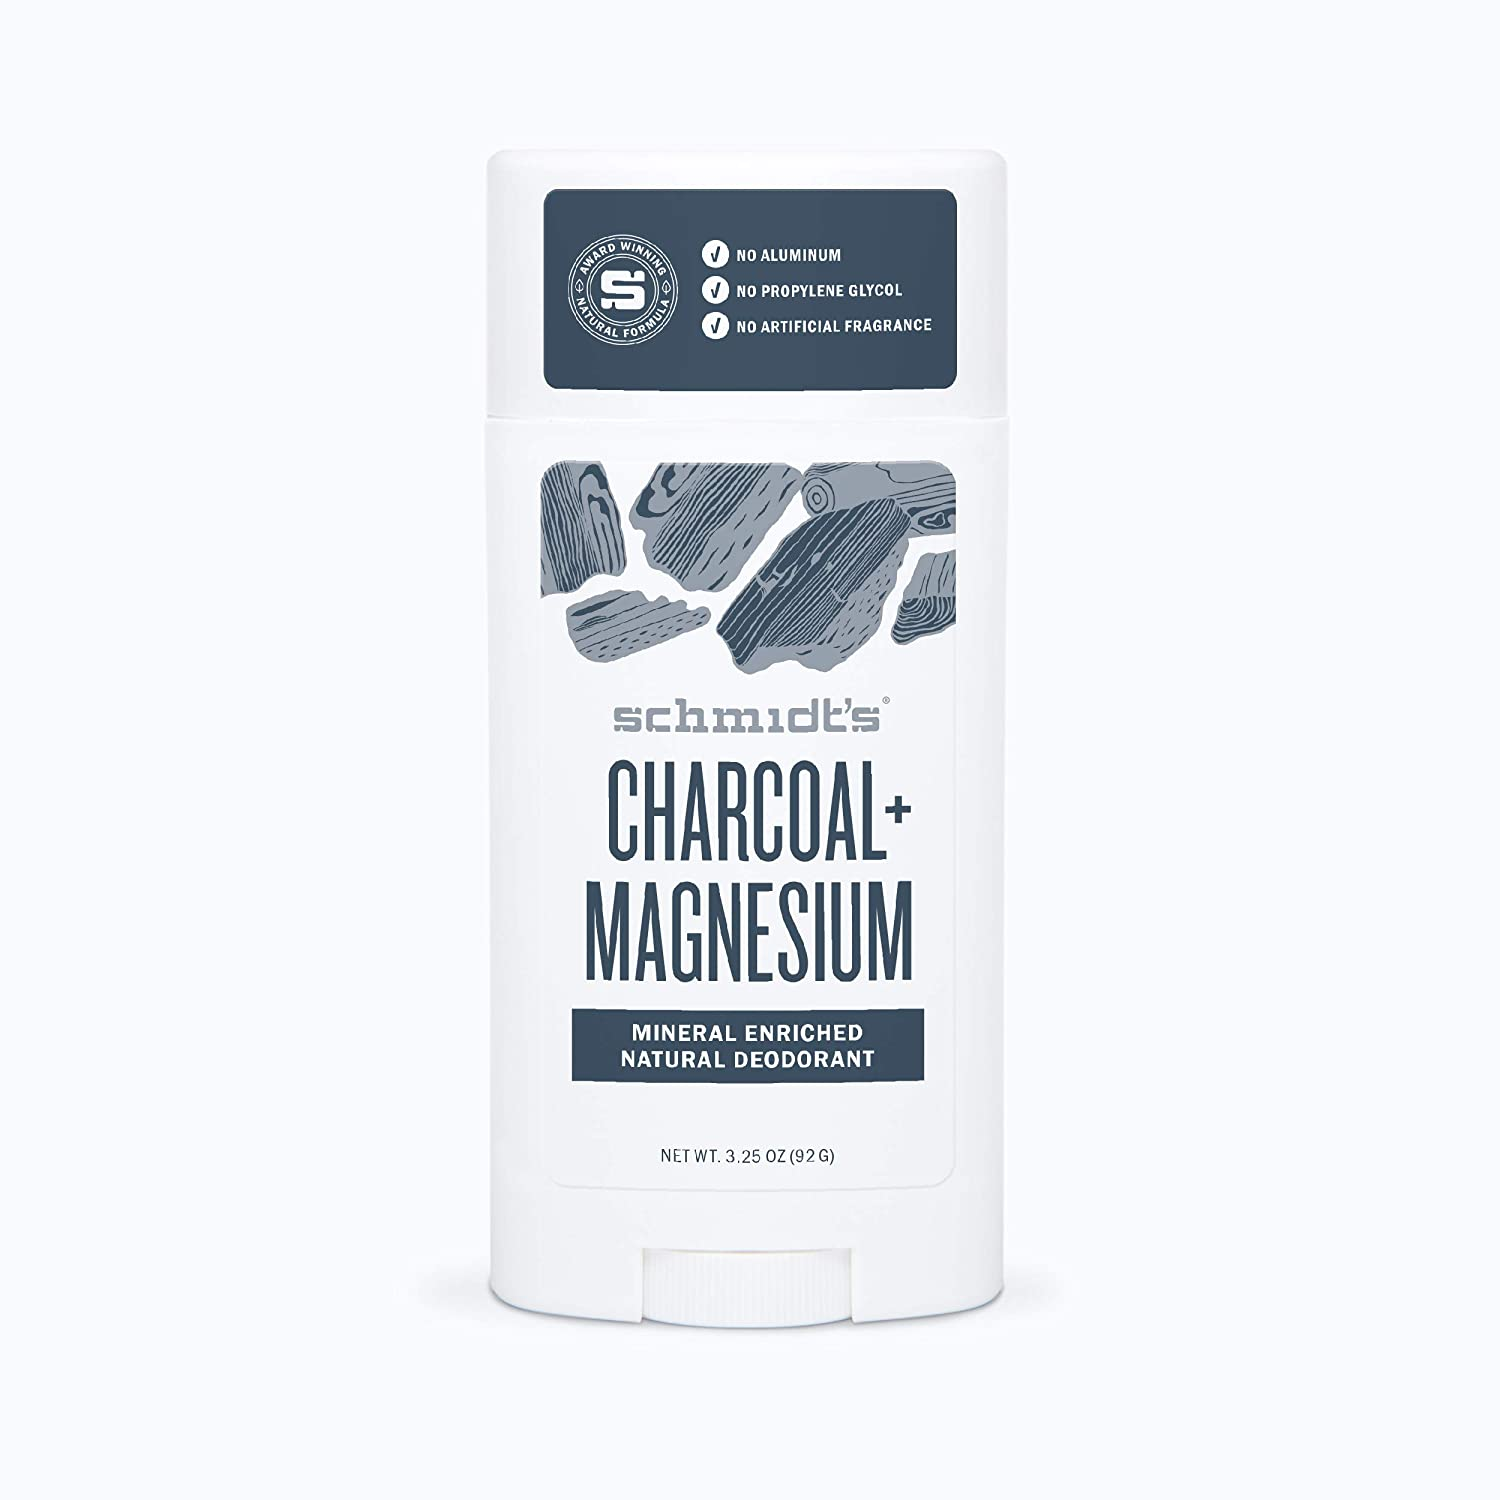 Schmidt's Natural Deodorant - Charcoal and Magnesium, 3.25 ounces 75 g/ 58 ml